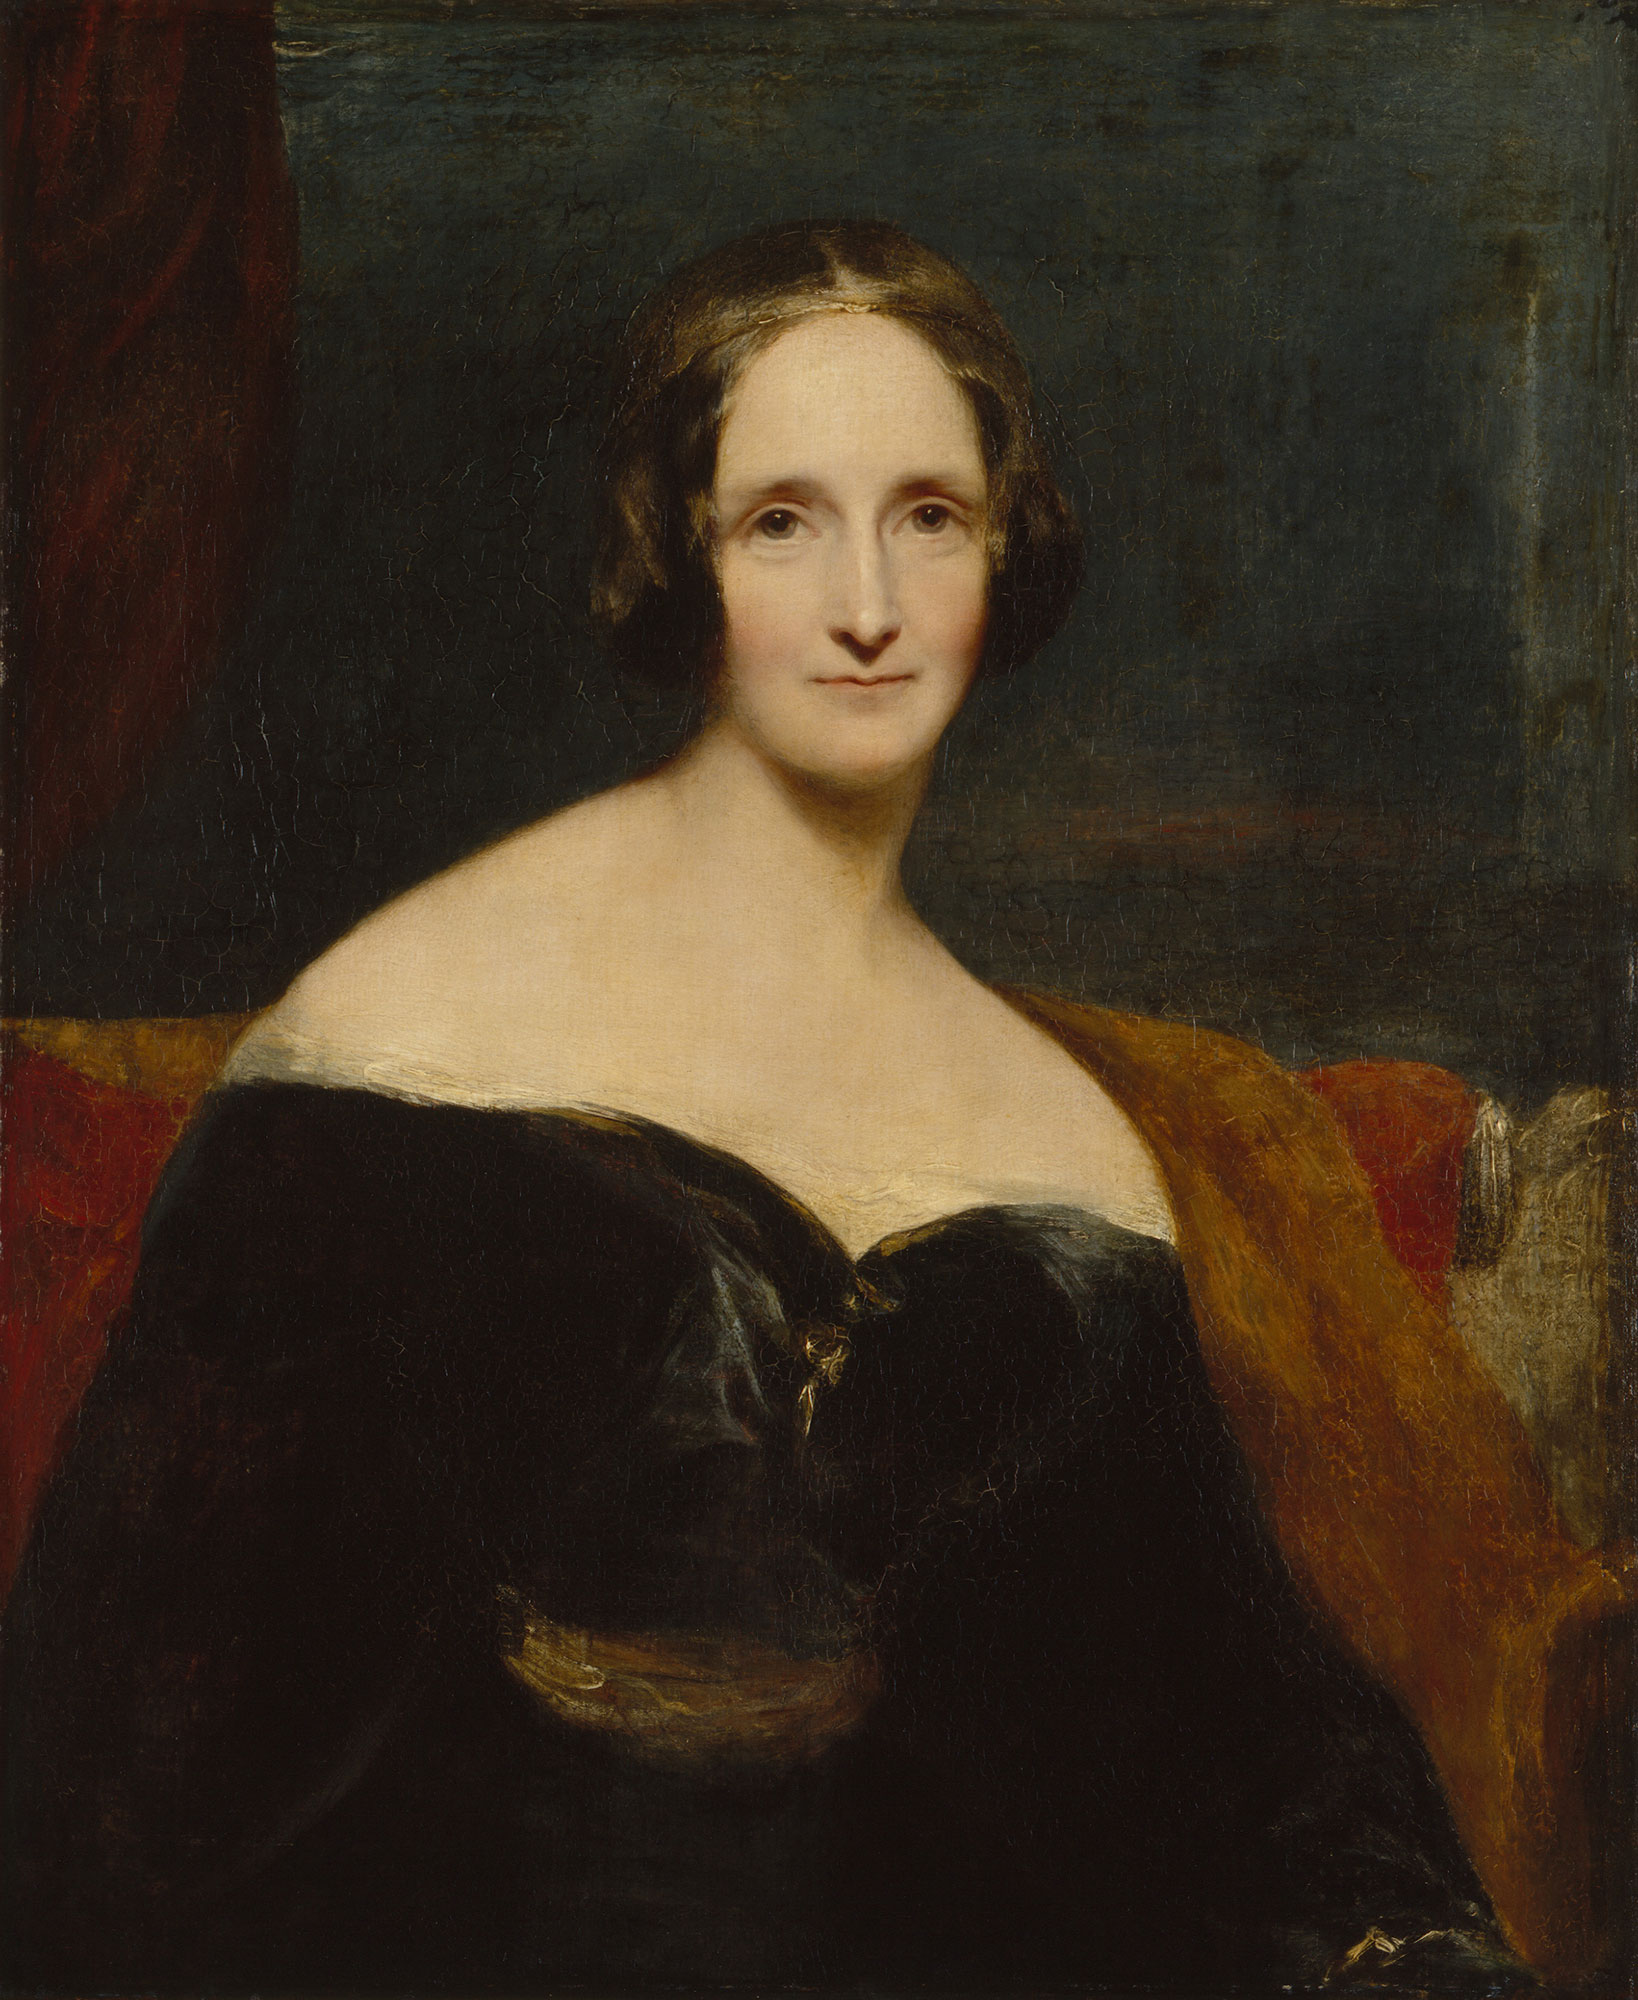 Mary Shelley, author of Frankenstein. Portrait by Richard Rothwell © National Portrait Gallery, London.